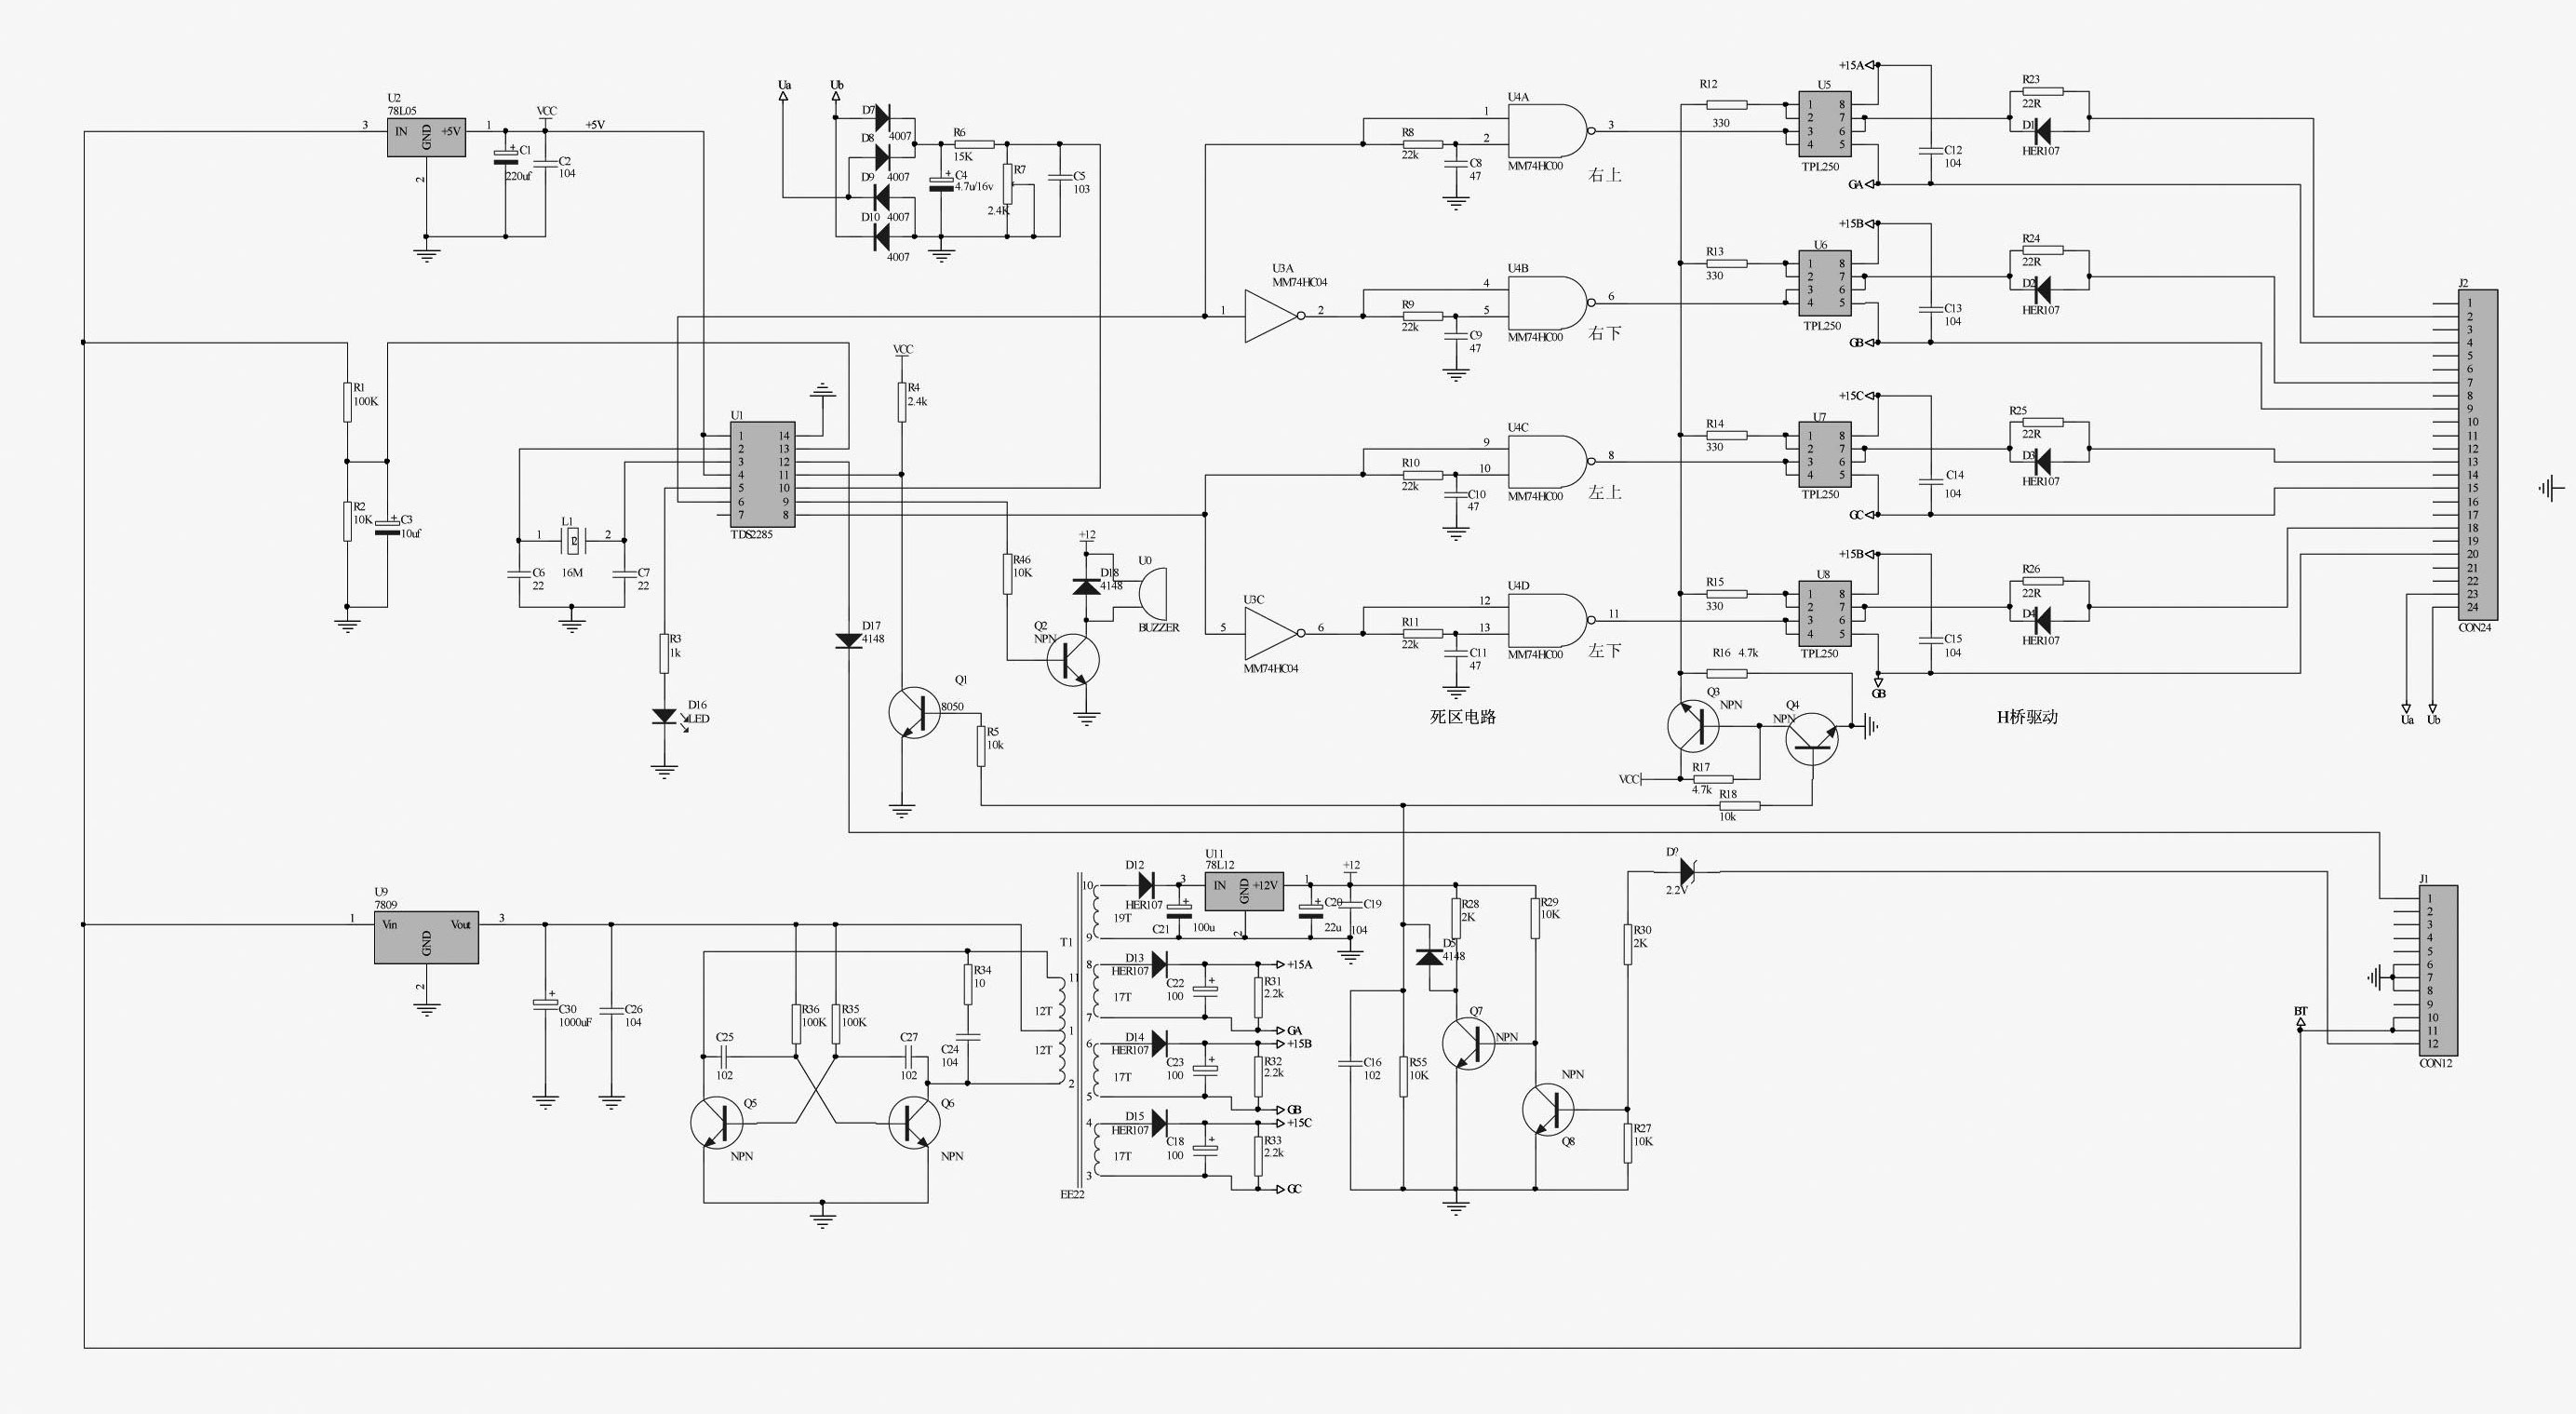 1000w power inverter SPWM driven circuit diagram